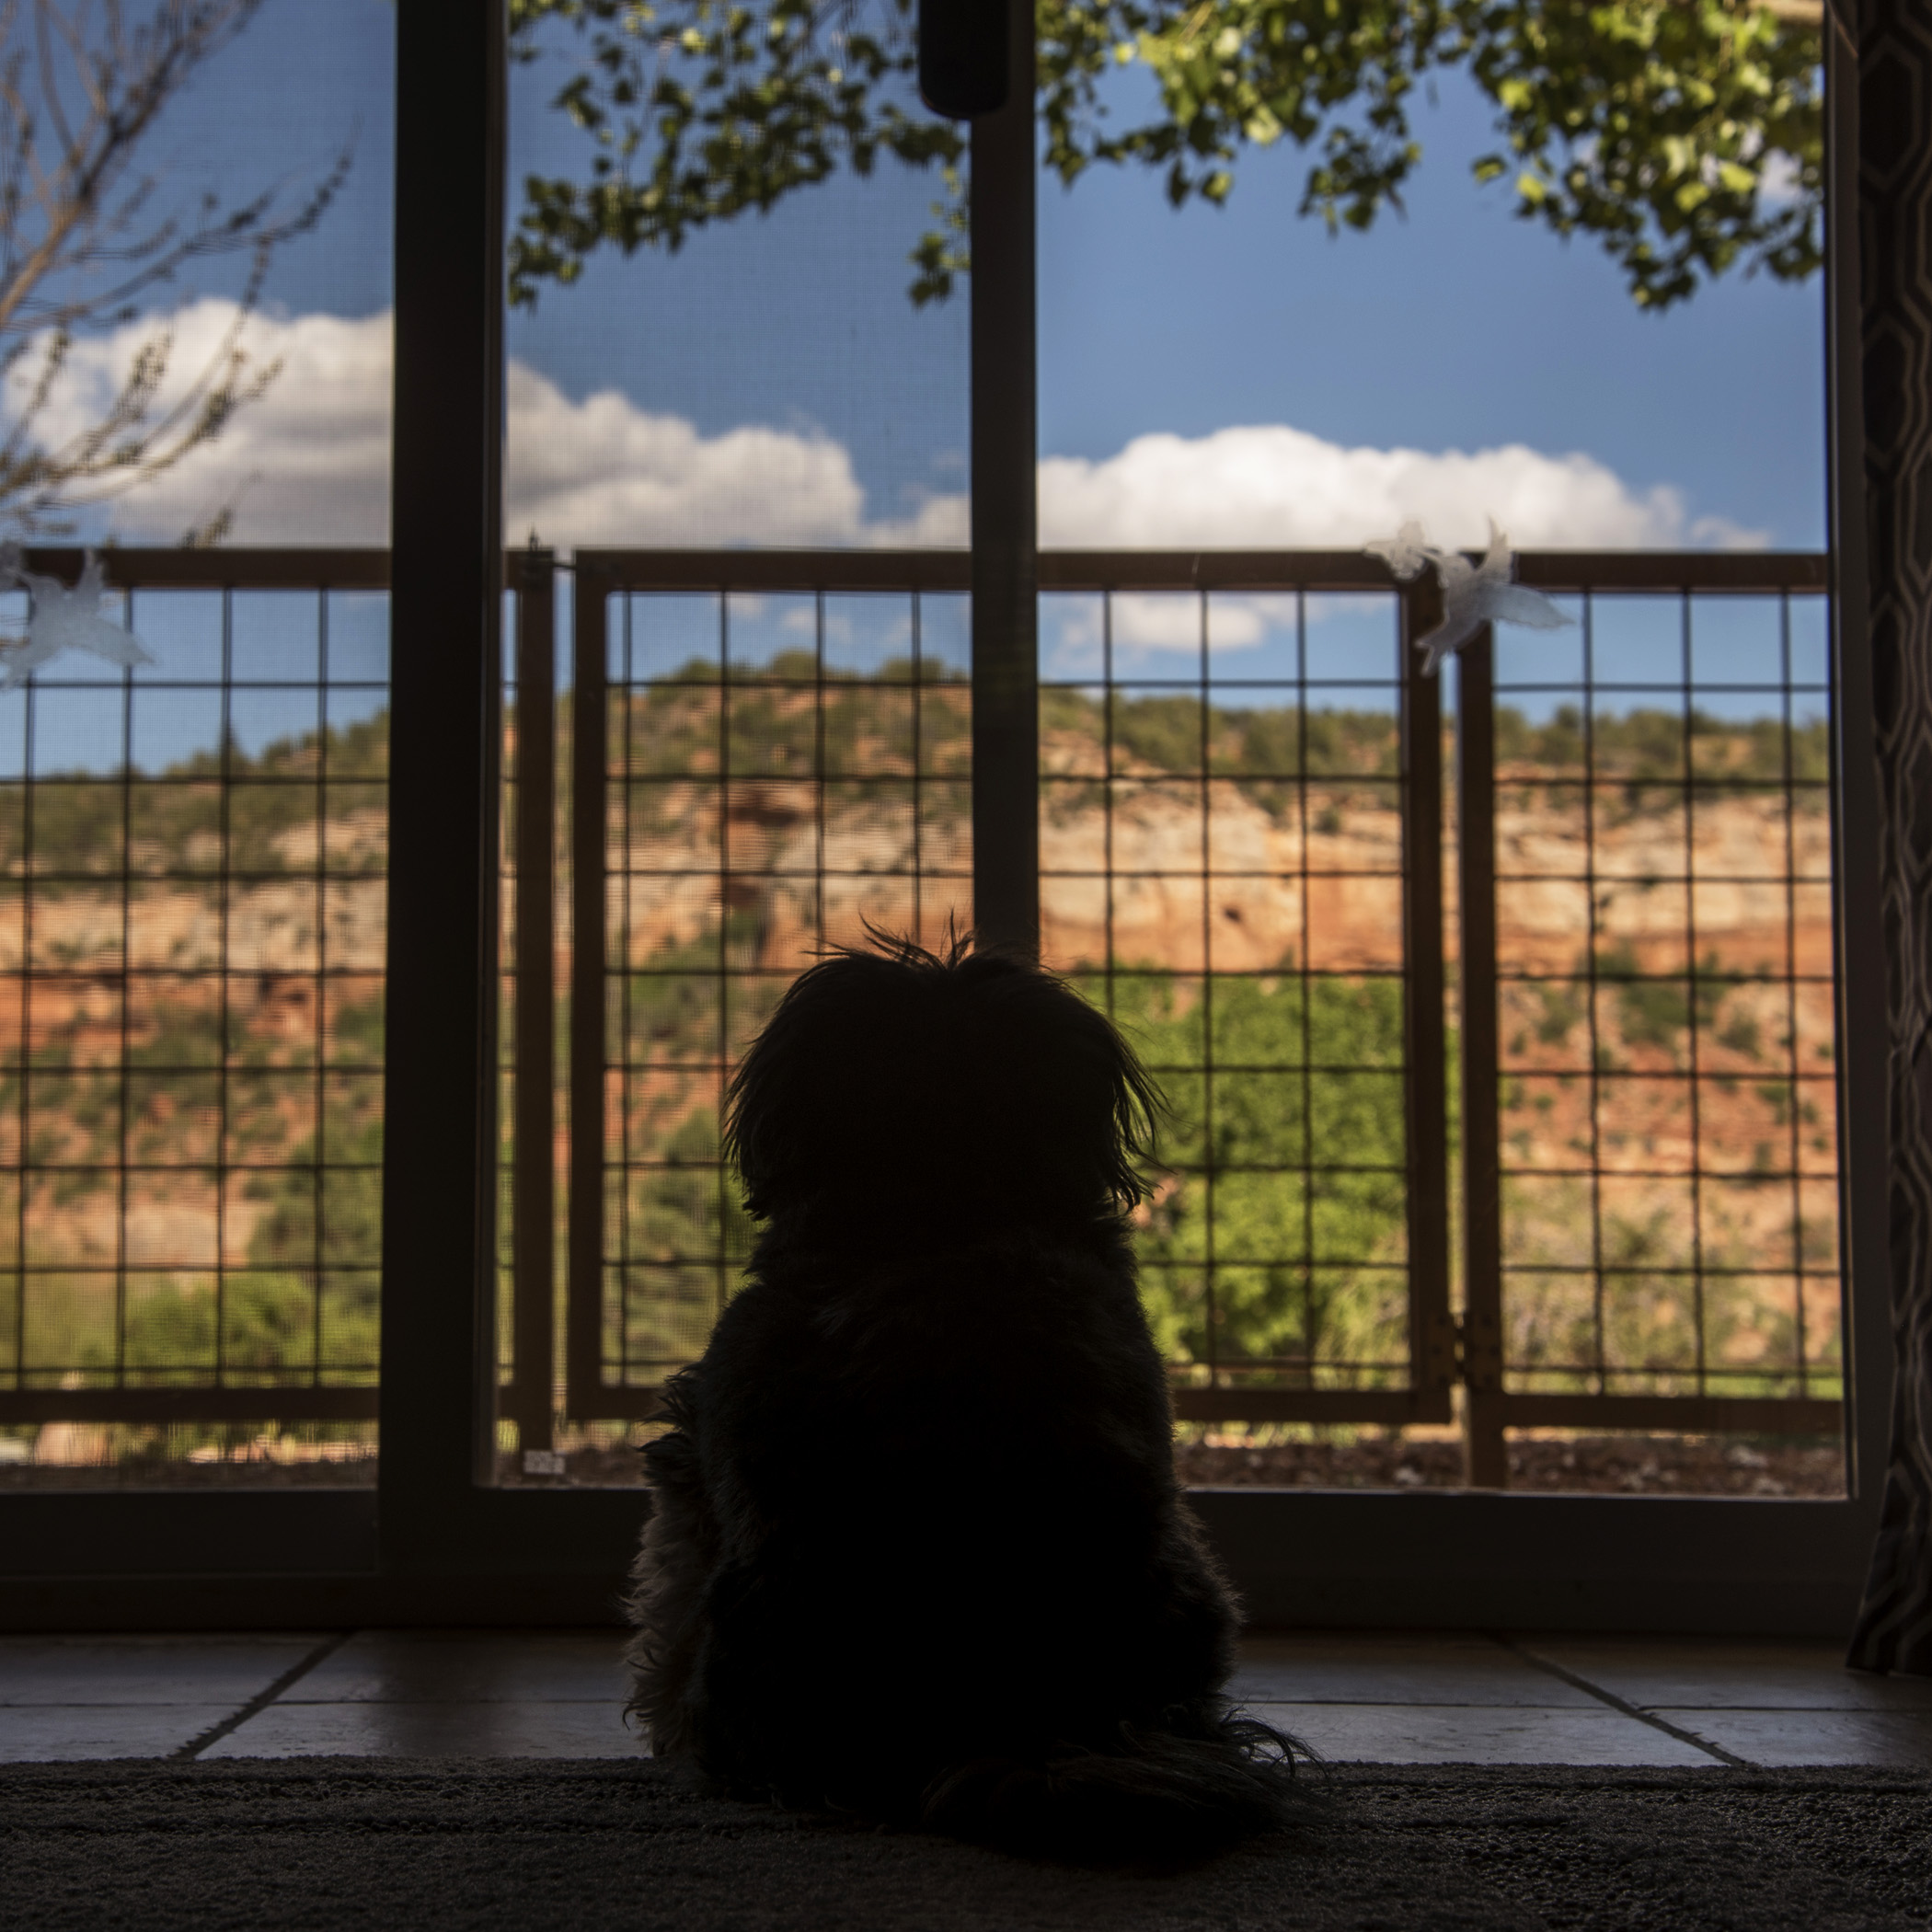 Yep, this will be a perfect place for me to spend my day. (Mommy Note: I don't know how he does it, but within 5 minutes of arriving and getting settled, this was the spot he choose. It's as if he could just sense this was the perfect view…and no the door wasn't open, so no breeze was coming in.)